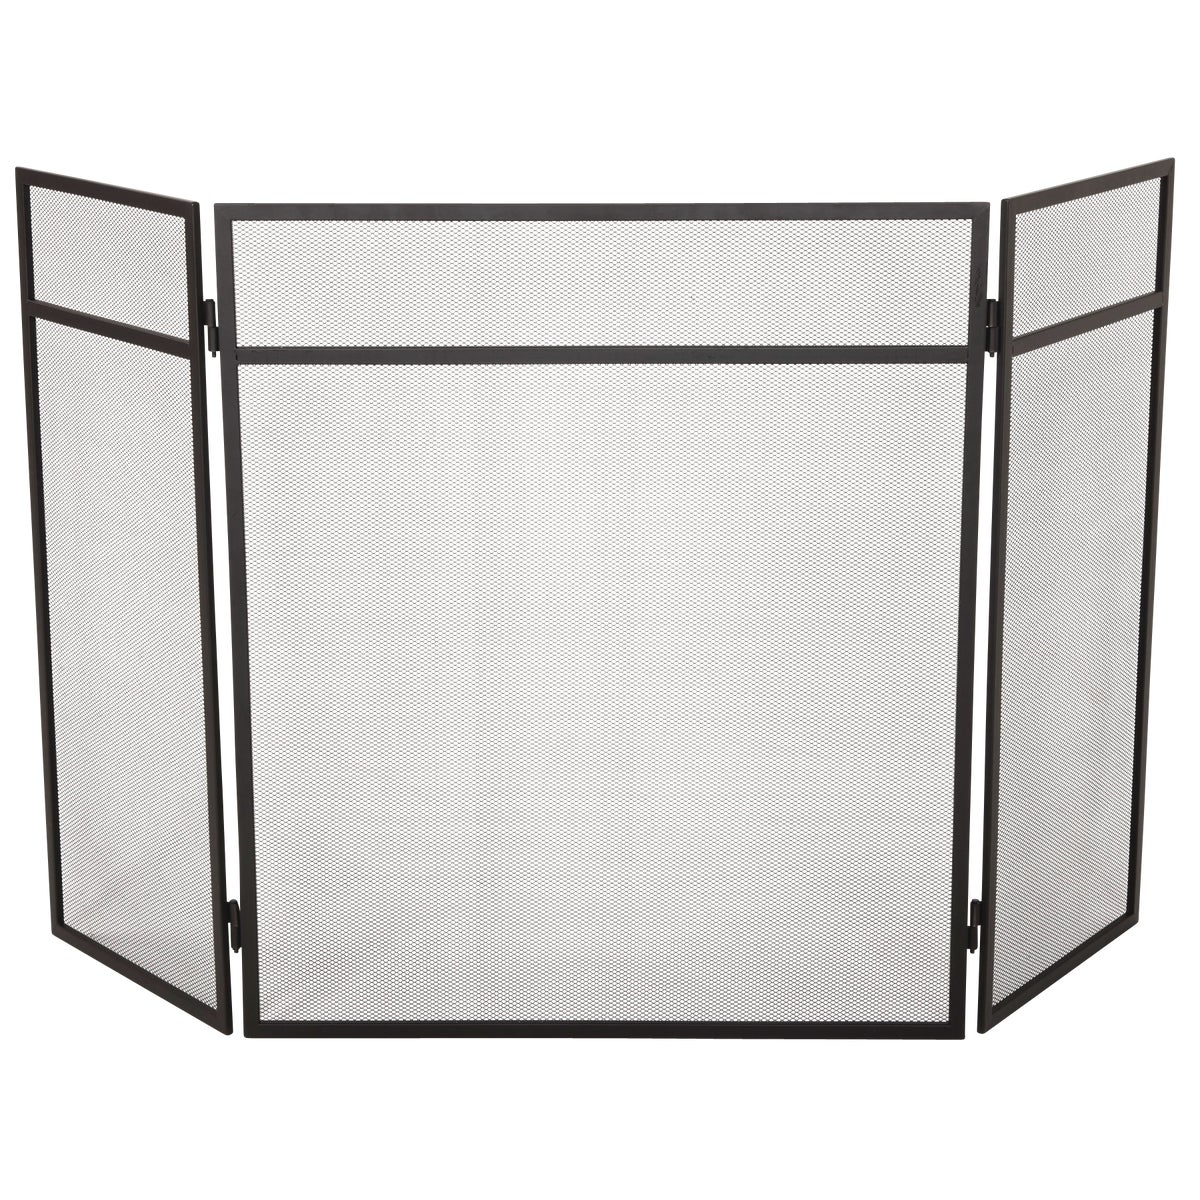 3-PANEL BLACK FIRESCREEN - DF1650S by Do it Best